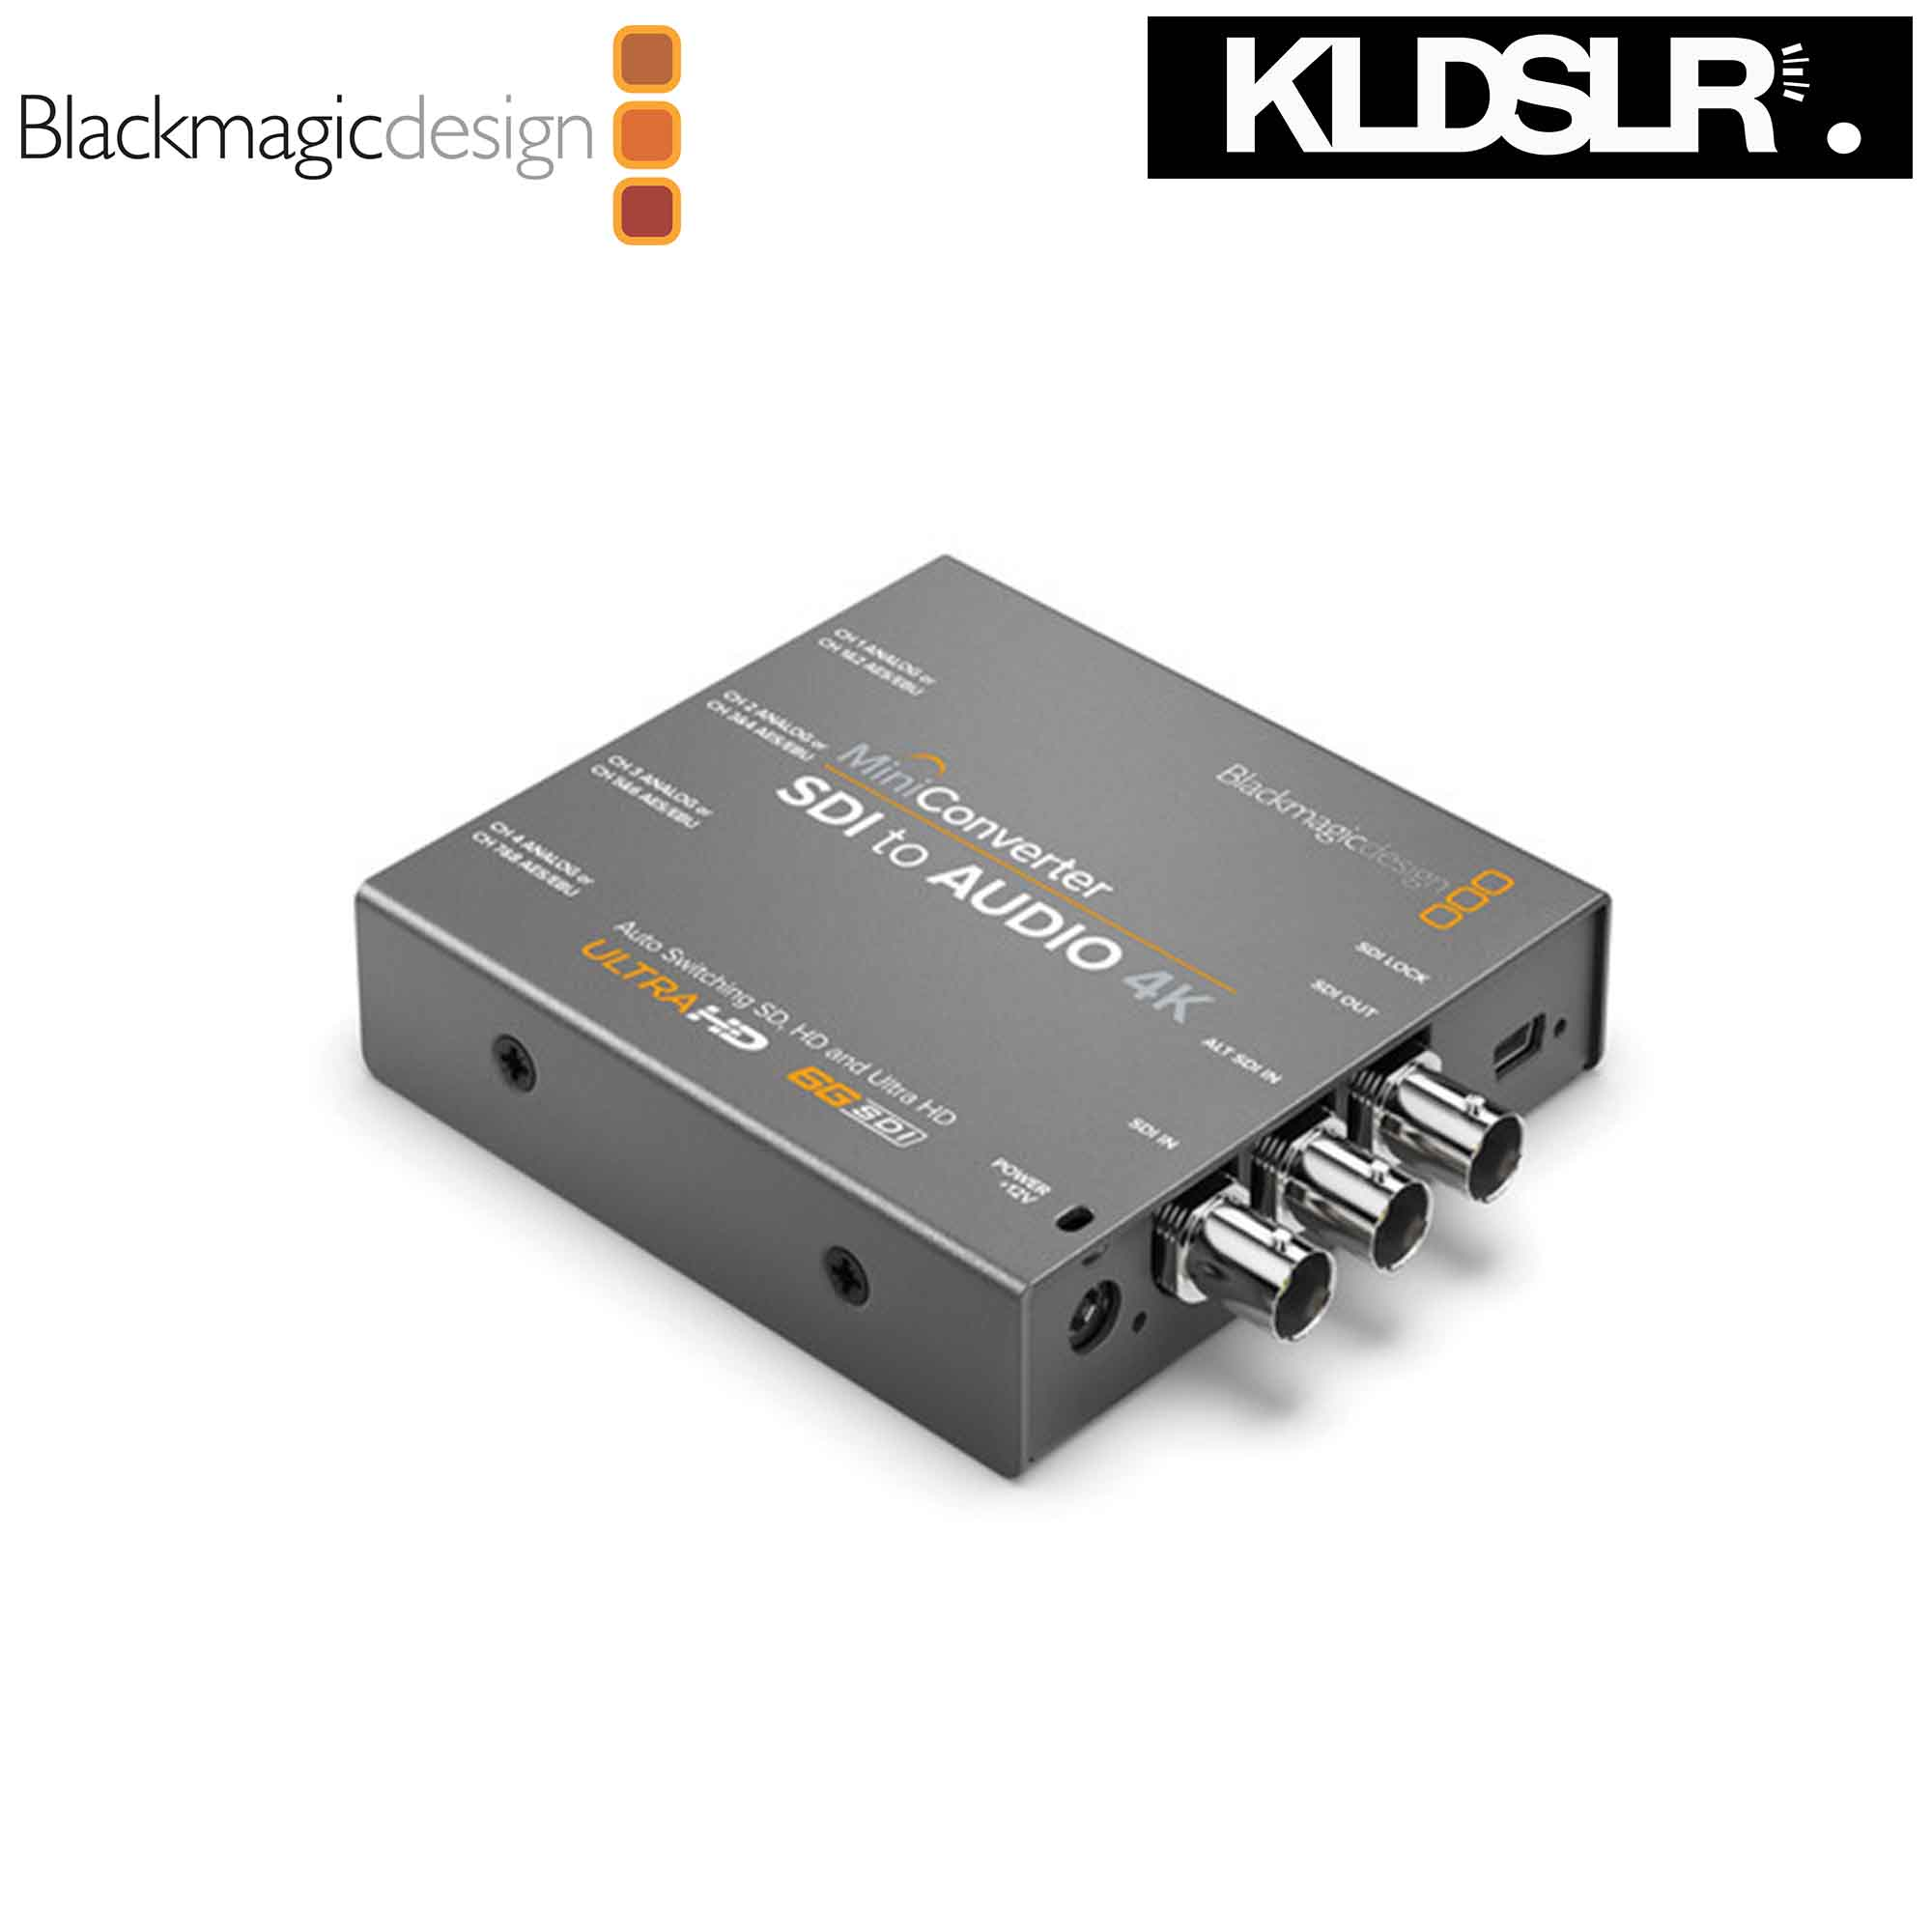 Blackmagic Design Mini Converter SDI to Audio 4K (Blackmagic Malaysia)